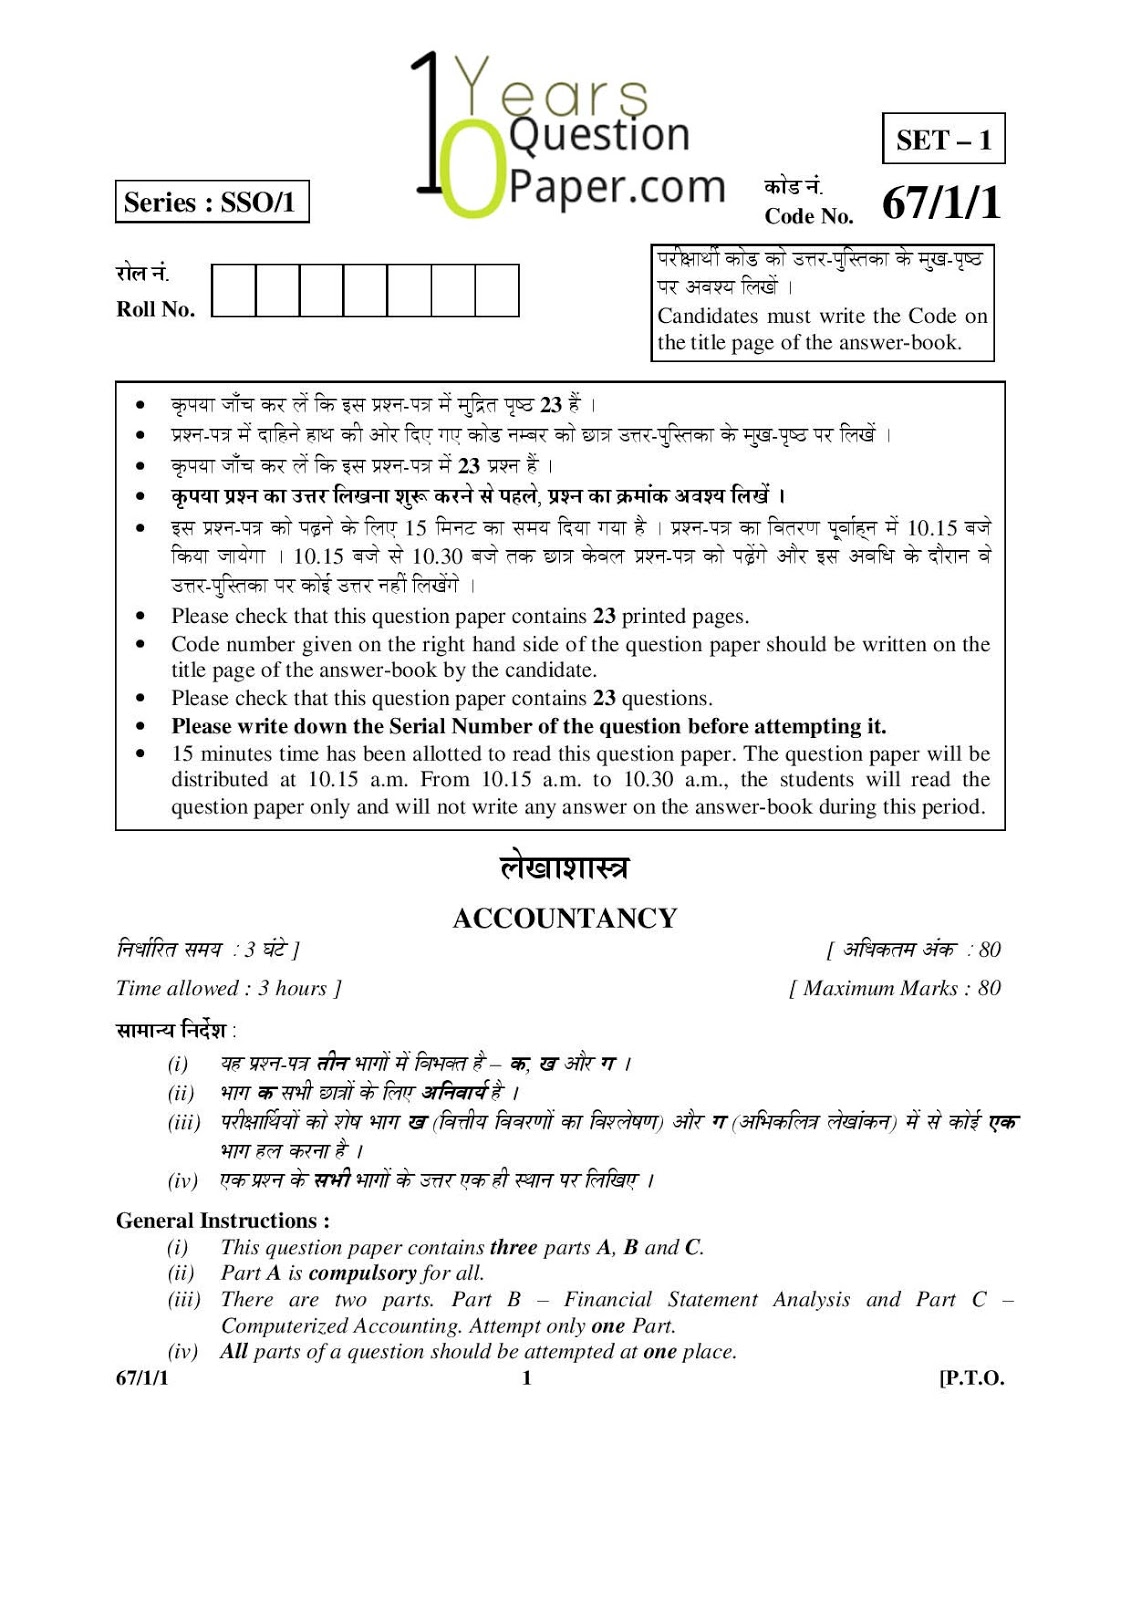 essay for english exam Final essay exam write a 500 word definition essay on one of the terms or concepts from the list provided below use other modes of writing, such as description.